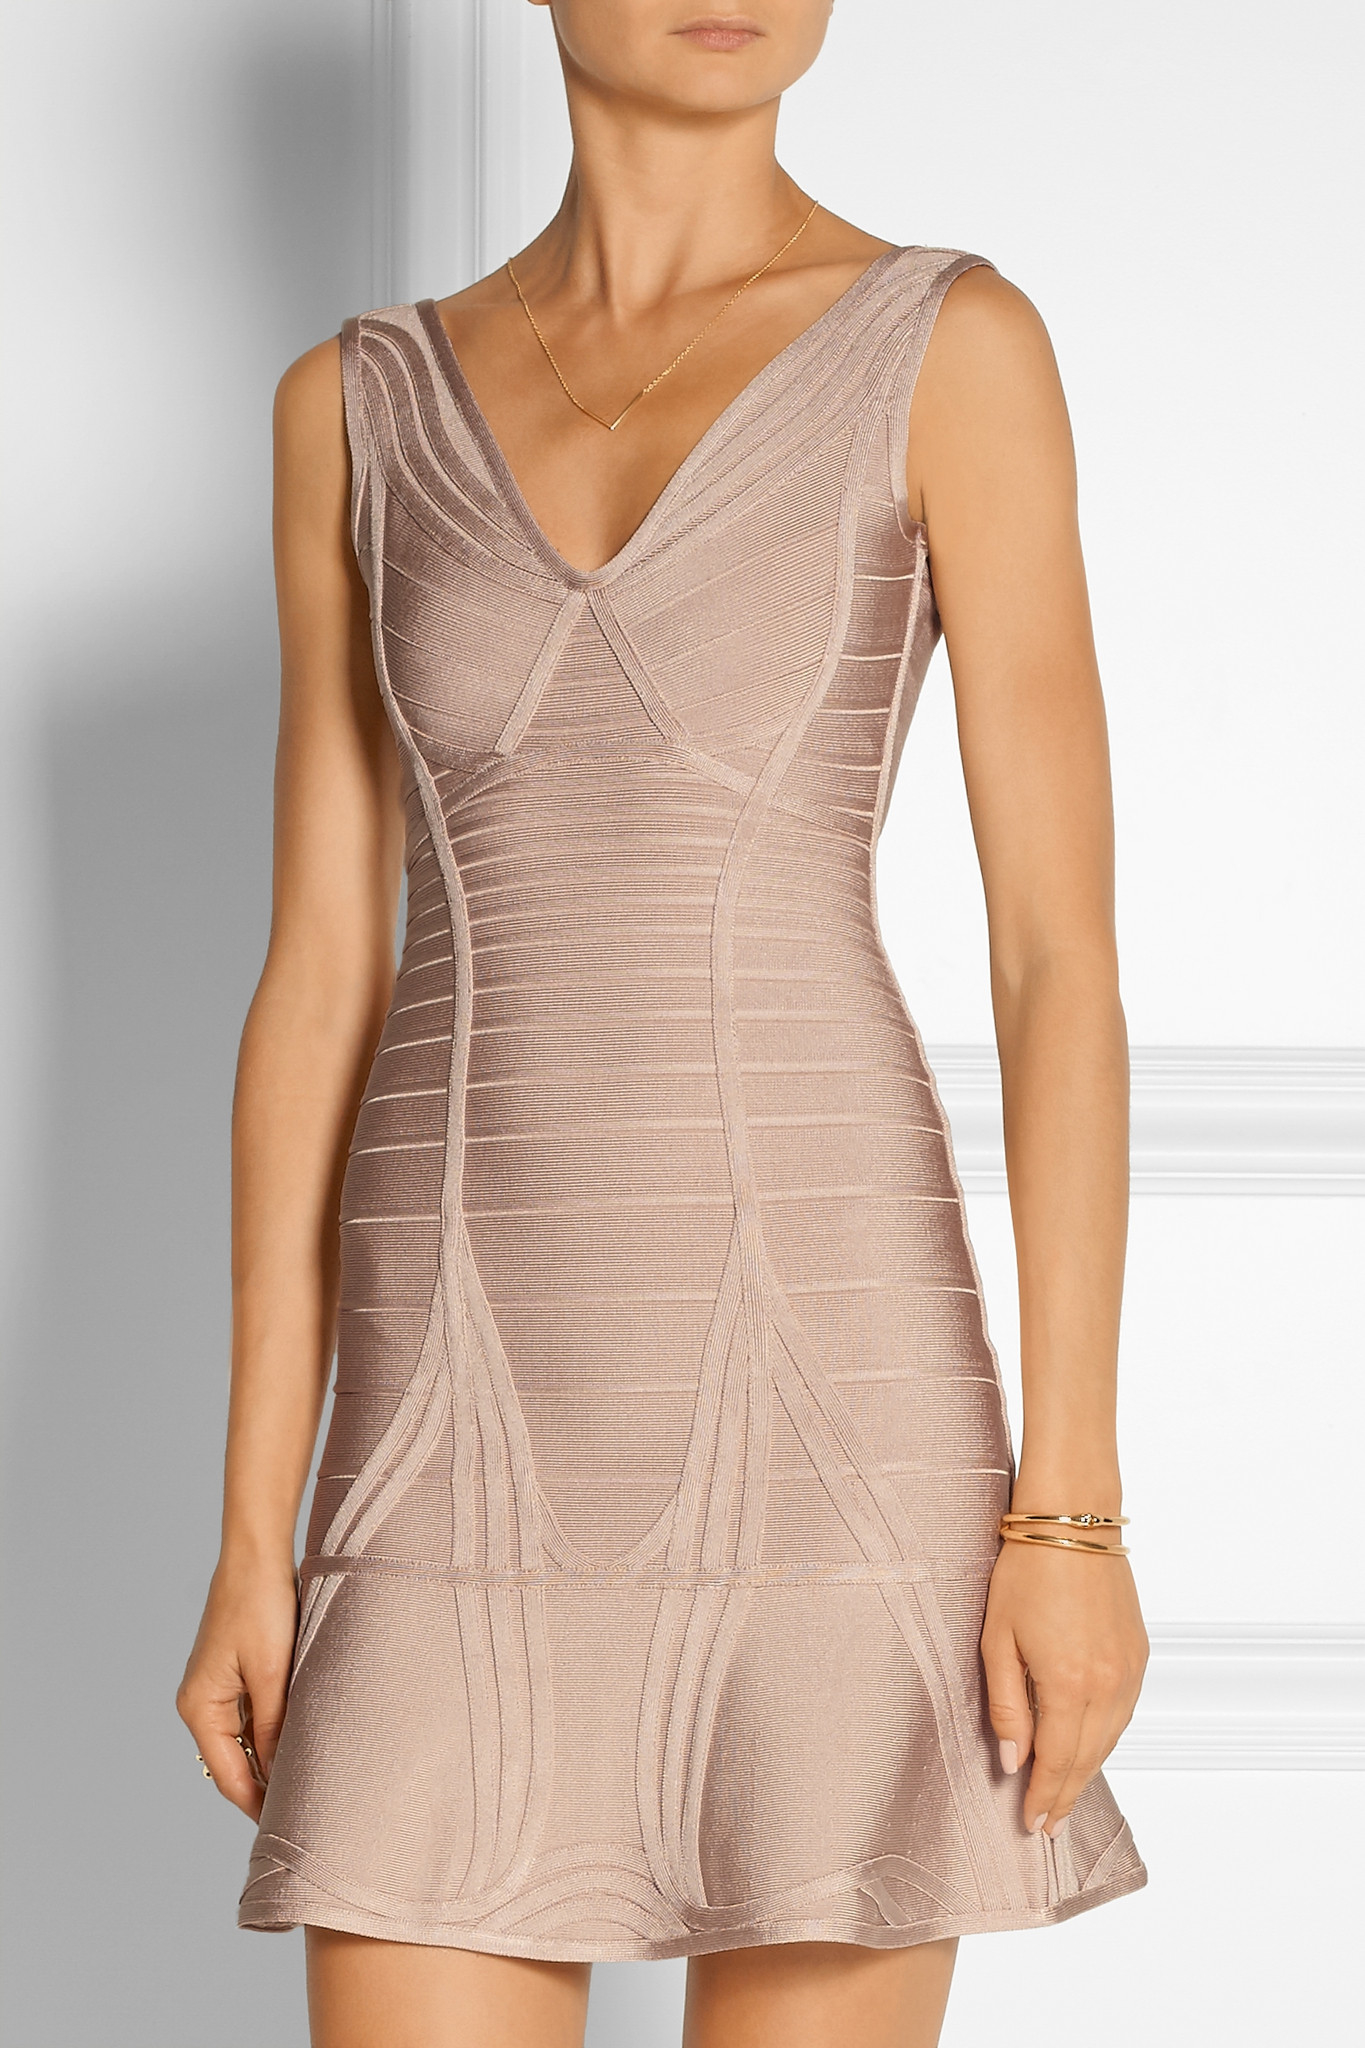 04fc094159b0 Gallery. Previously sold at  NET-A-PORTER · Women s Herve Leger Bandage  Women s Satin Mini Dresses ...